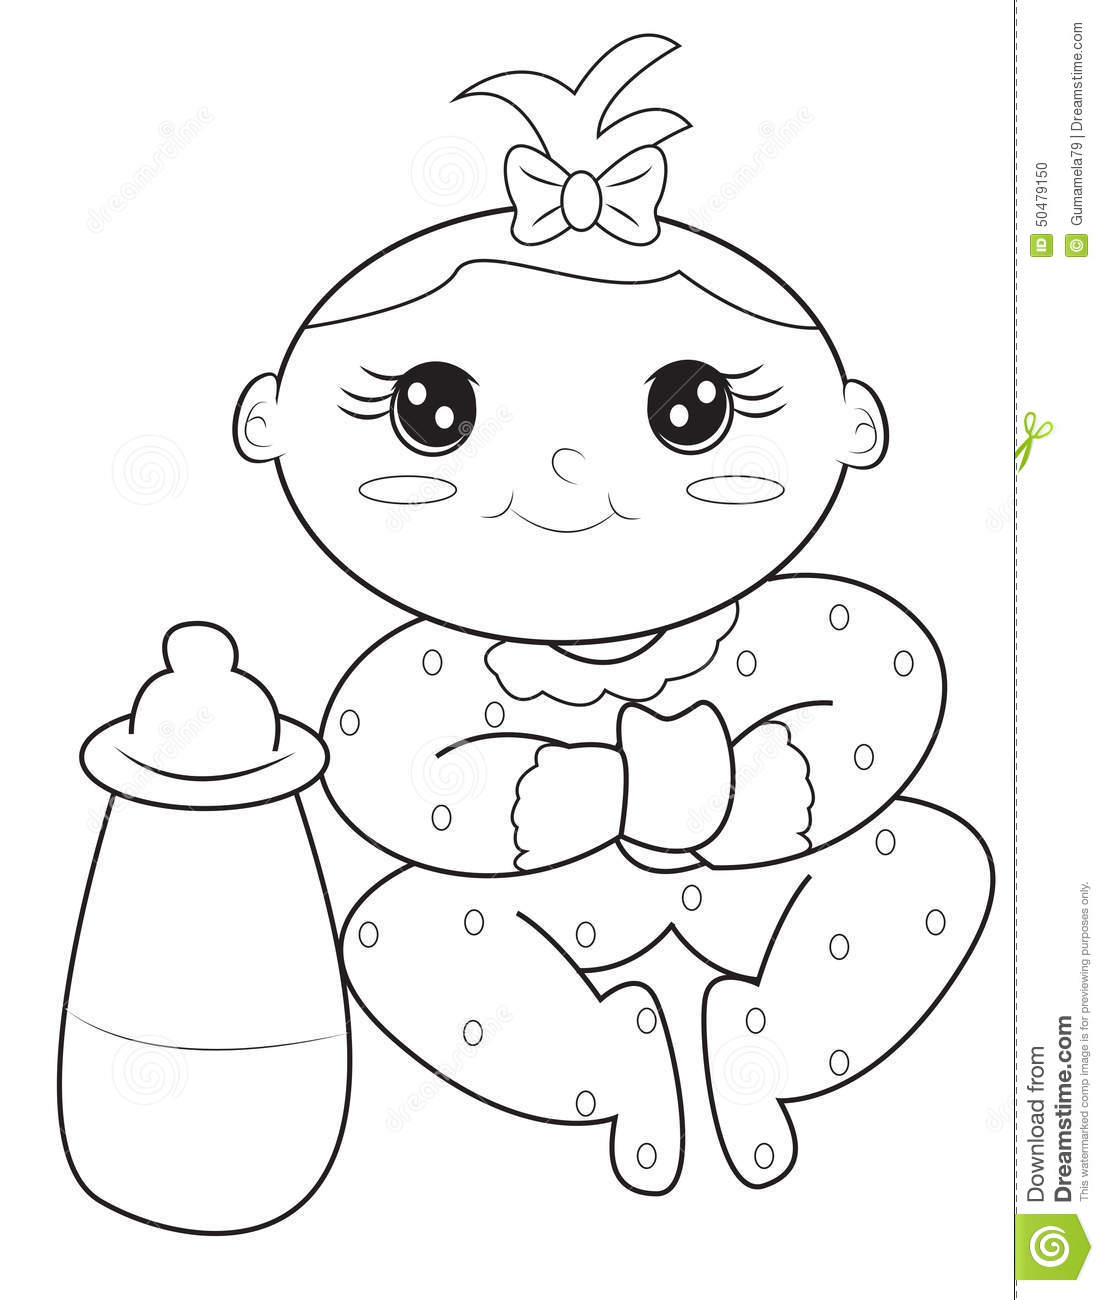 Baby girl coloring page stock illustration. Illustration of coloring ...